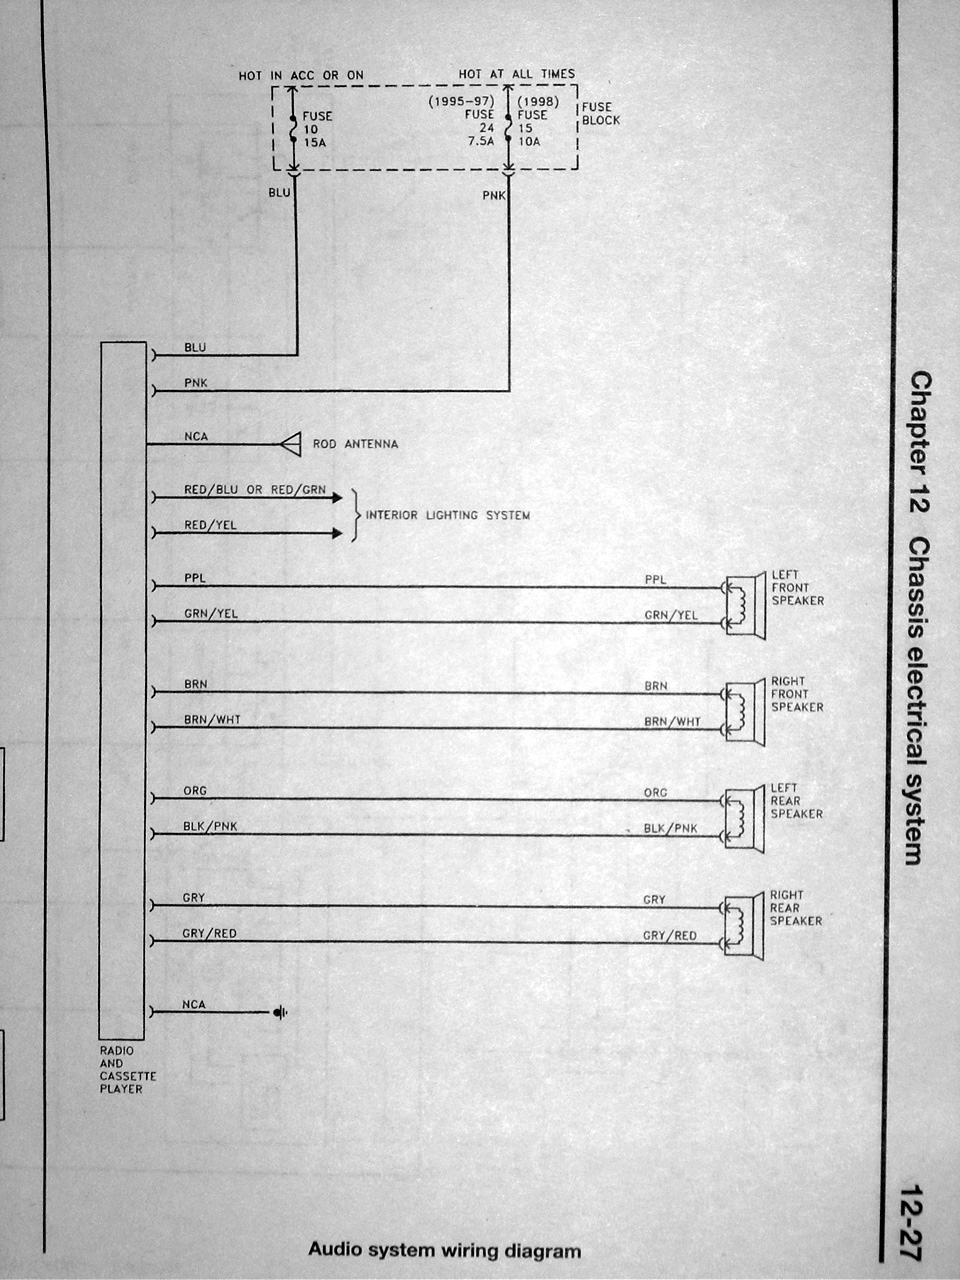 2000 Nissan Frontier Engine Wiring Harness | Wiring Diagram 2019 on nissan xterra ac diagram, nissan xterra starter relay location, nissan xterra plug diagram, nissan xterra radio wiring harness, nissan xterra oil cooler, nissan xterra antenna, nissan sentra wiring diagram, 2004 xterra wiring diagram, nissan xterra cover, nissan xterra engine, nissan xterra fuse diagram, nissan 370z wiring diagram, nissan xterra solenoid, nissan xterra diesel conversion, nissan xterra firing order, nissan juke wiring diagram, nissan leaf wiring diagram, nissan xterra aftermarket radio, nissan xterra ignition, nissan xterra steering,